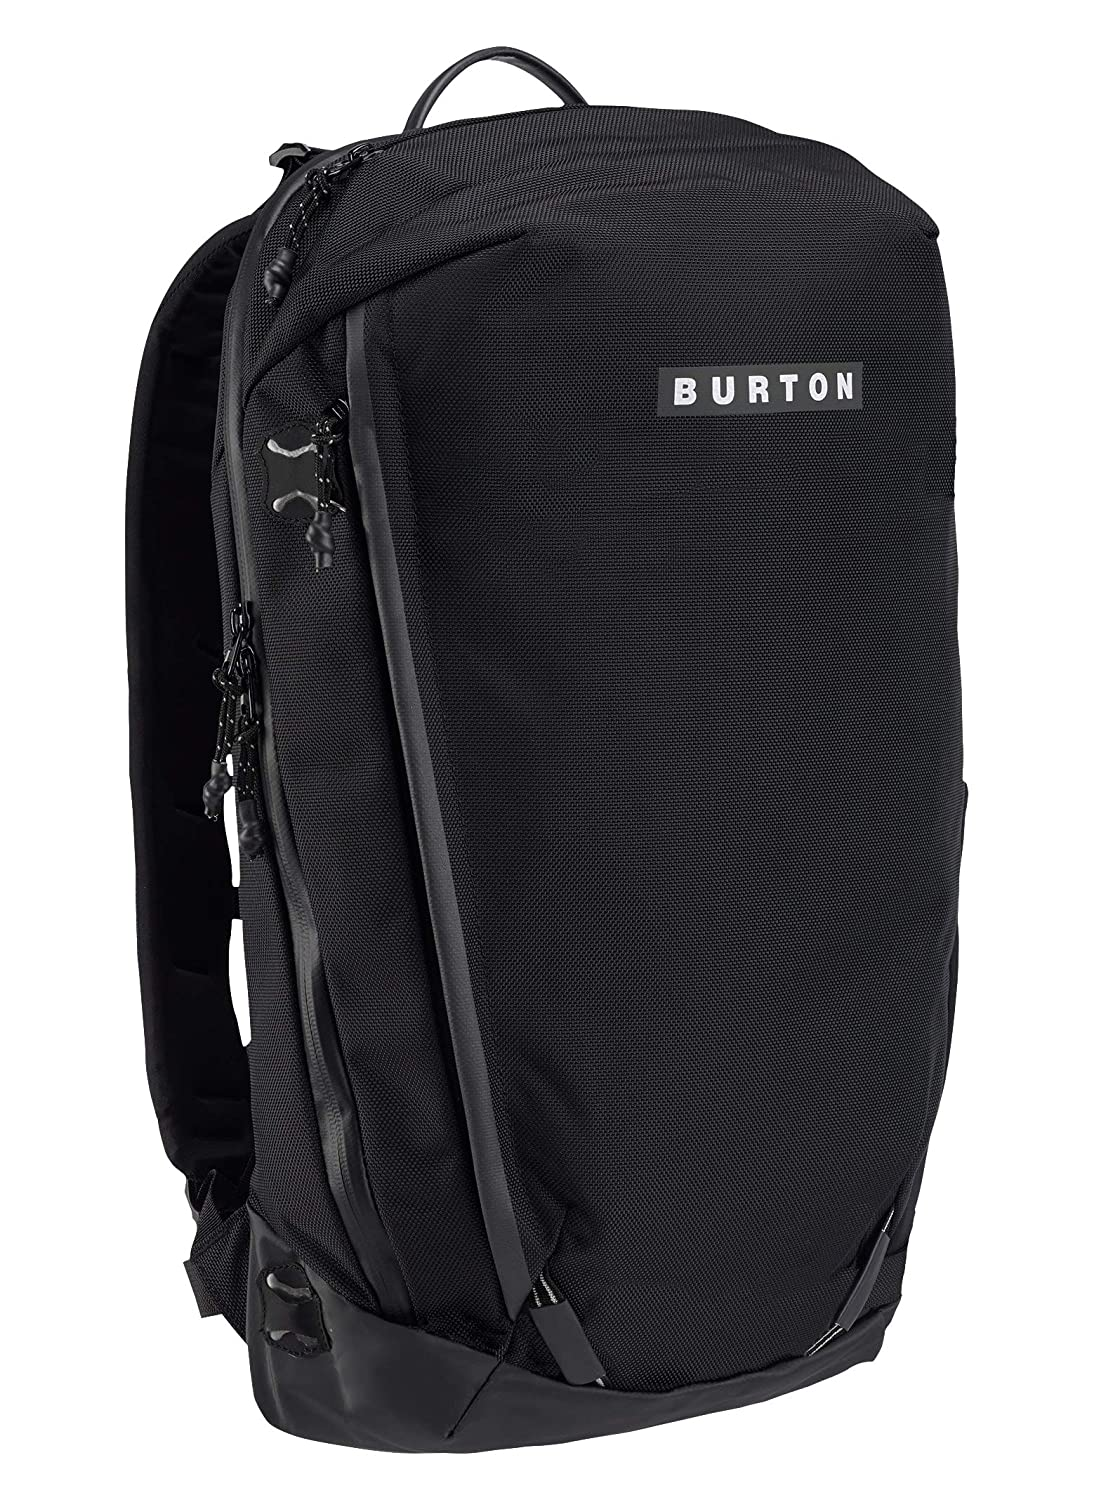 Burton Gorge Backpack Mens